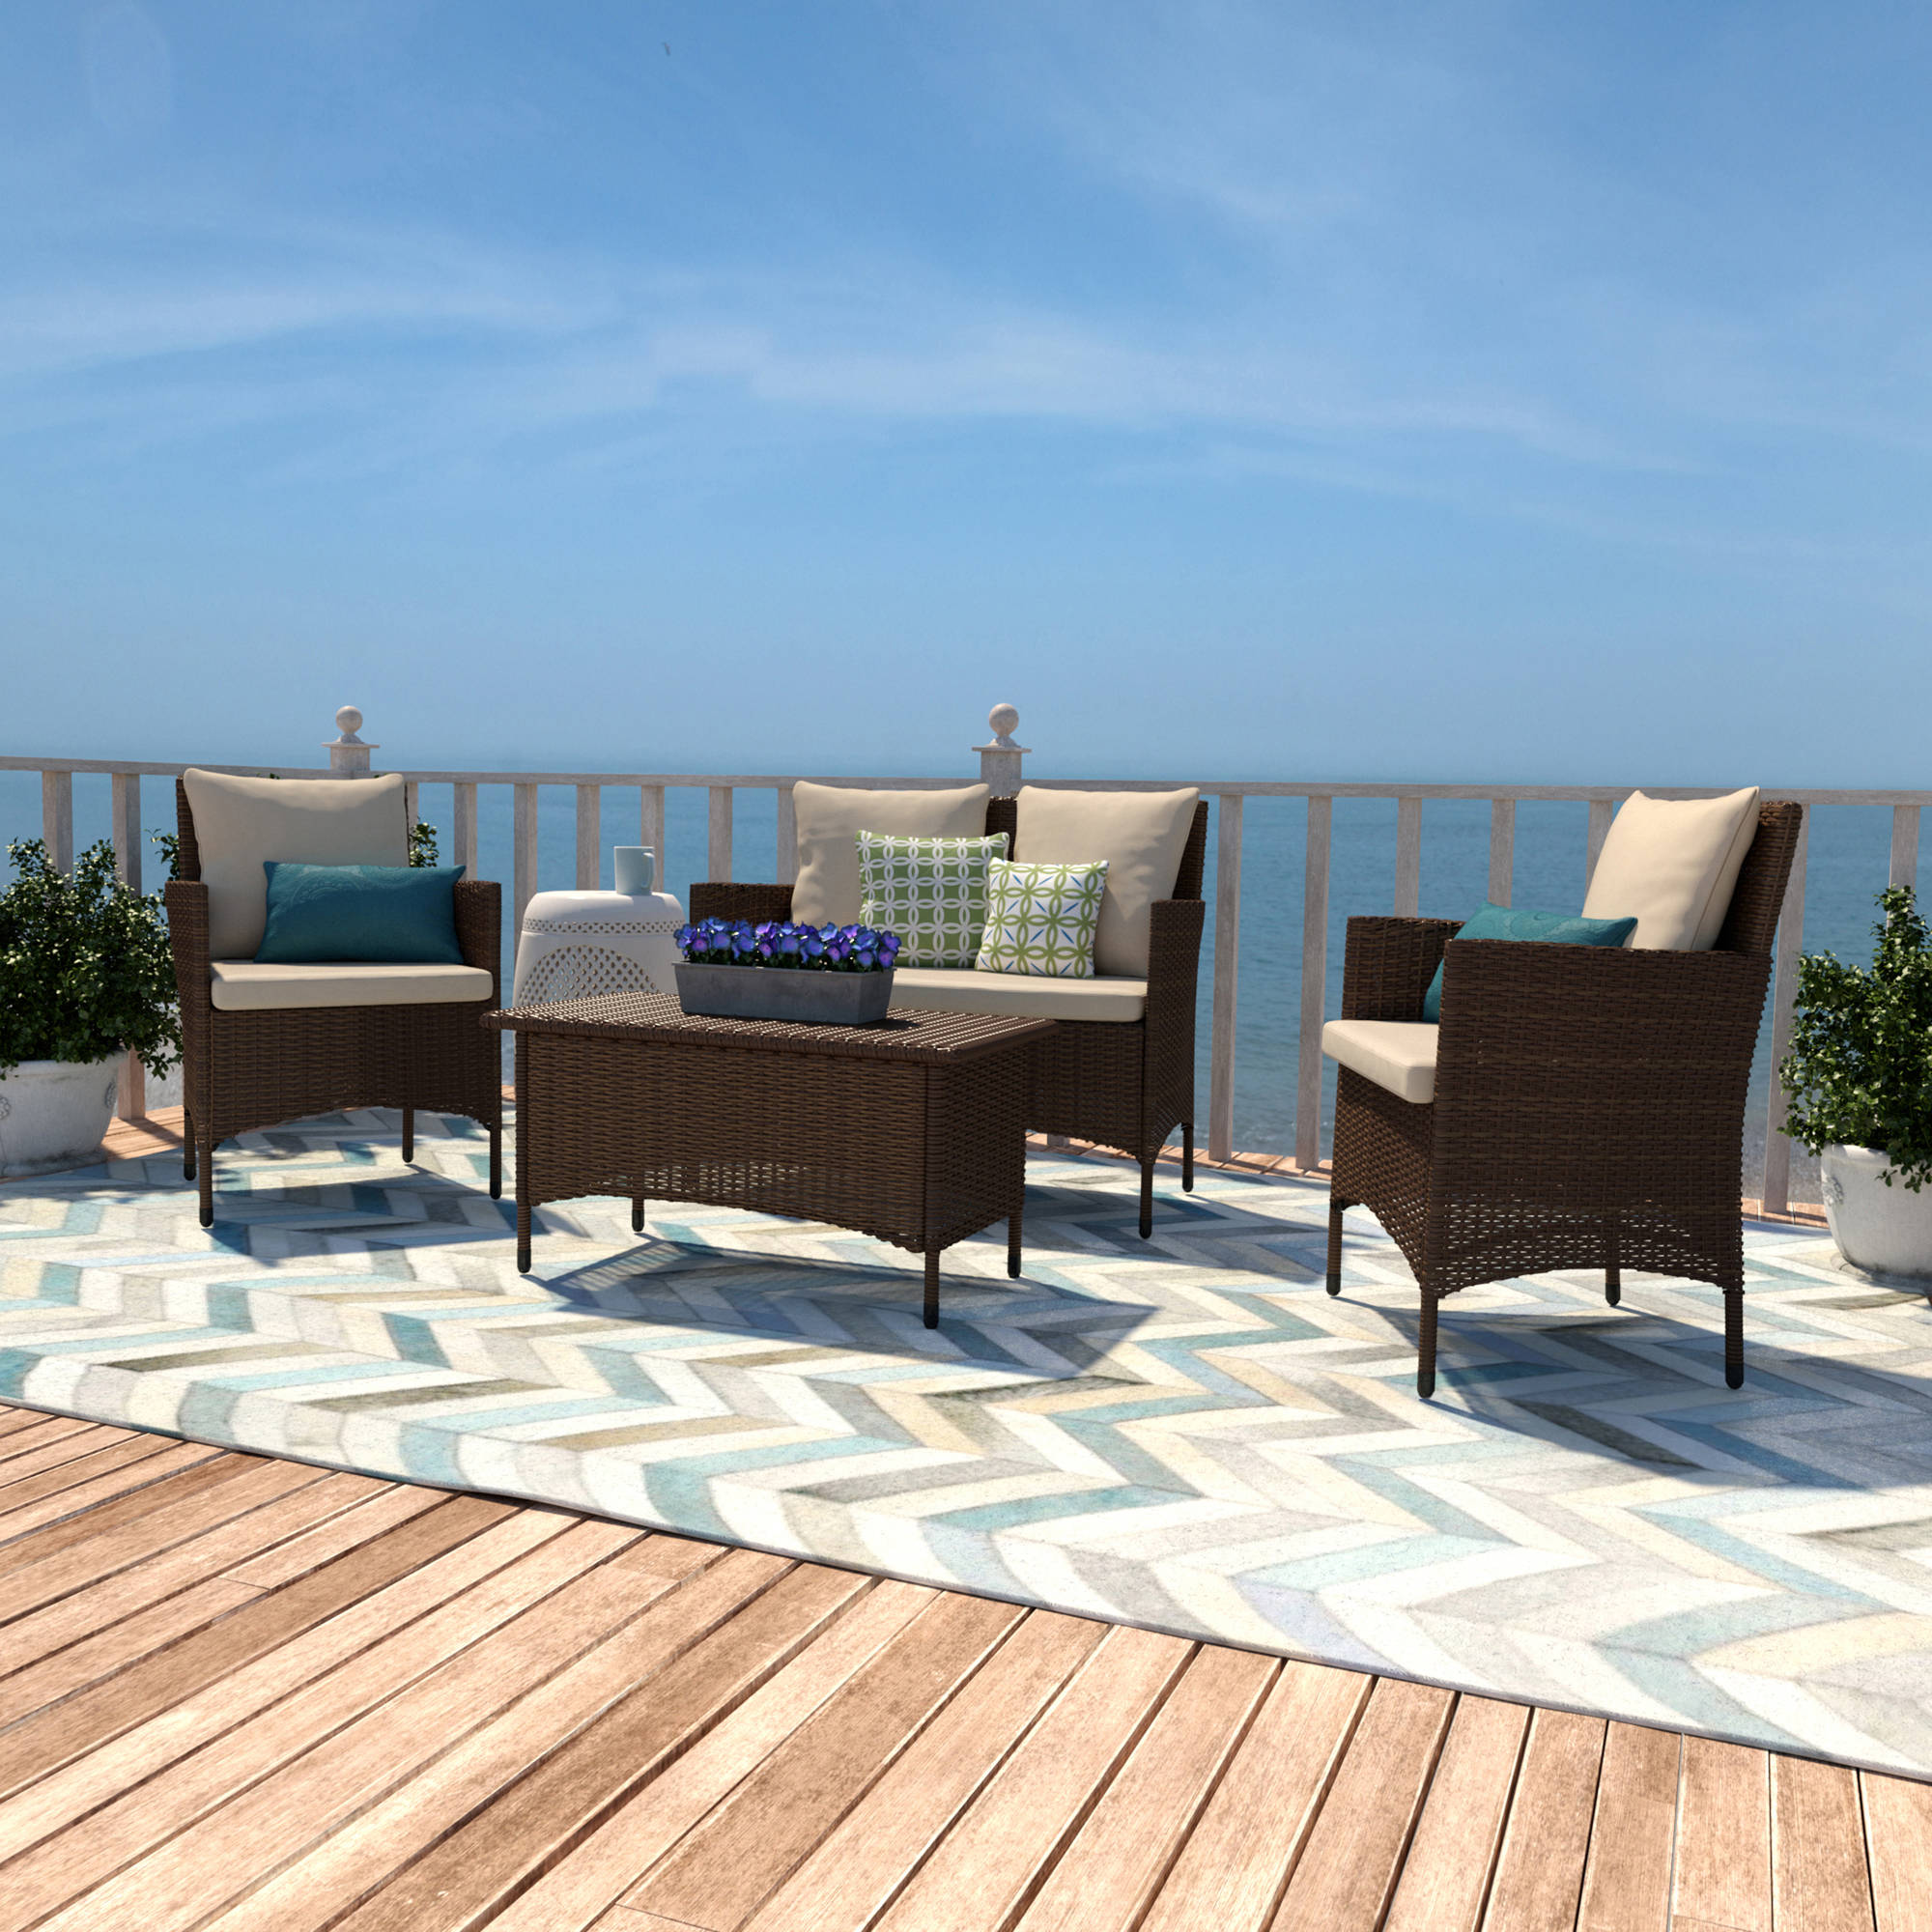 Aruba 4 Piece Wicker Indoor Outdoor Living Room Set